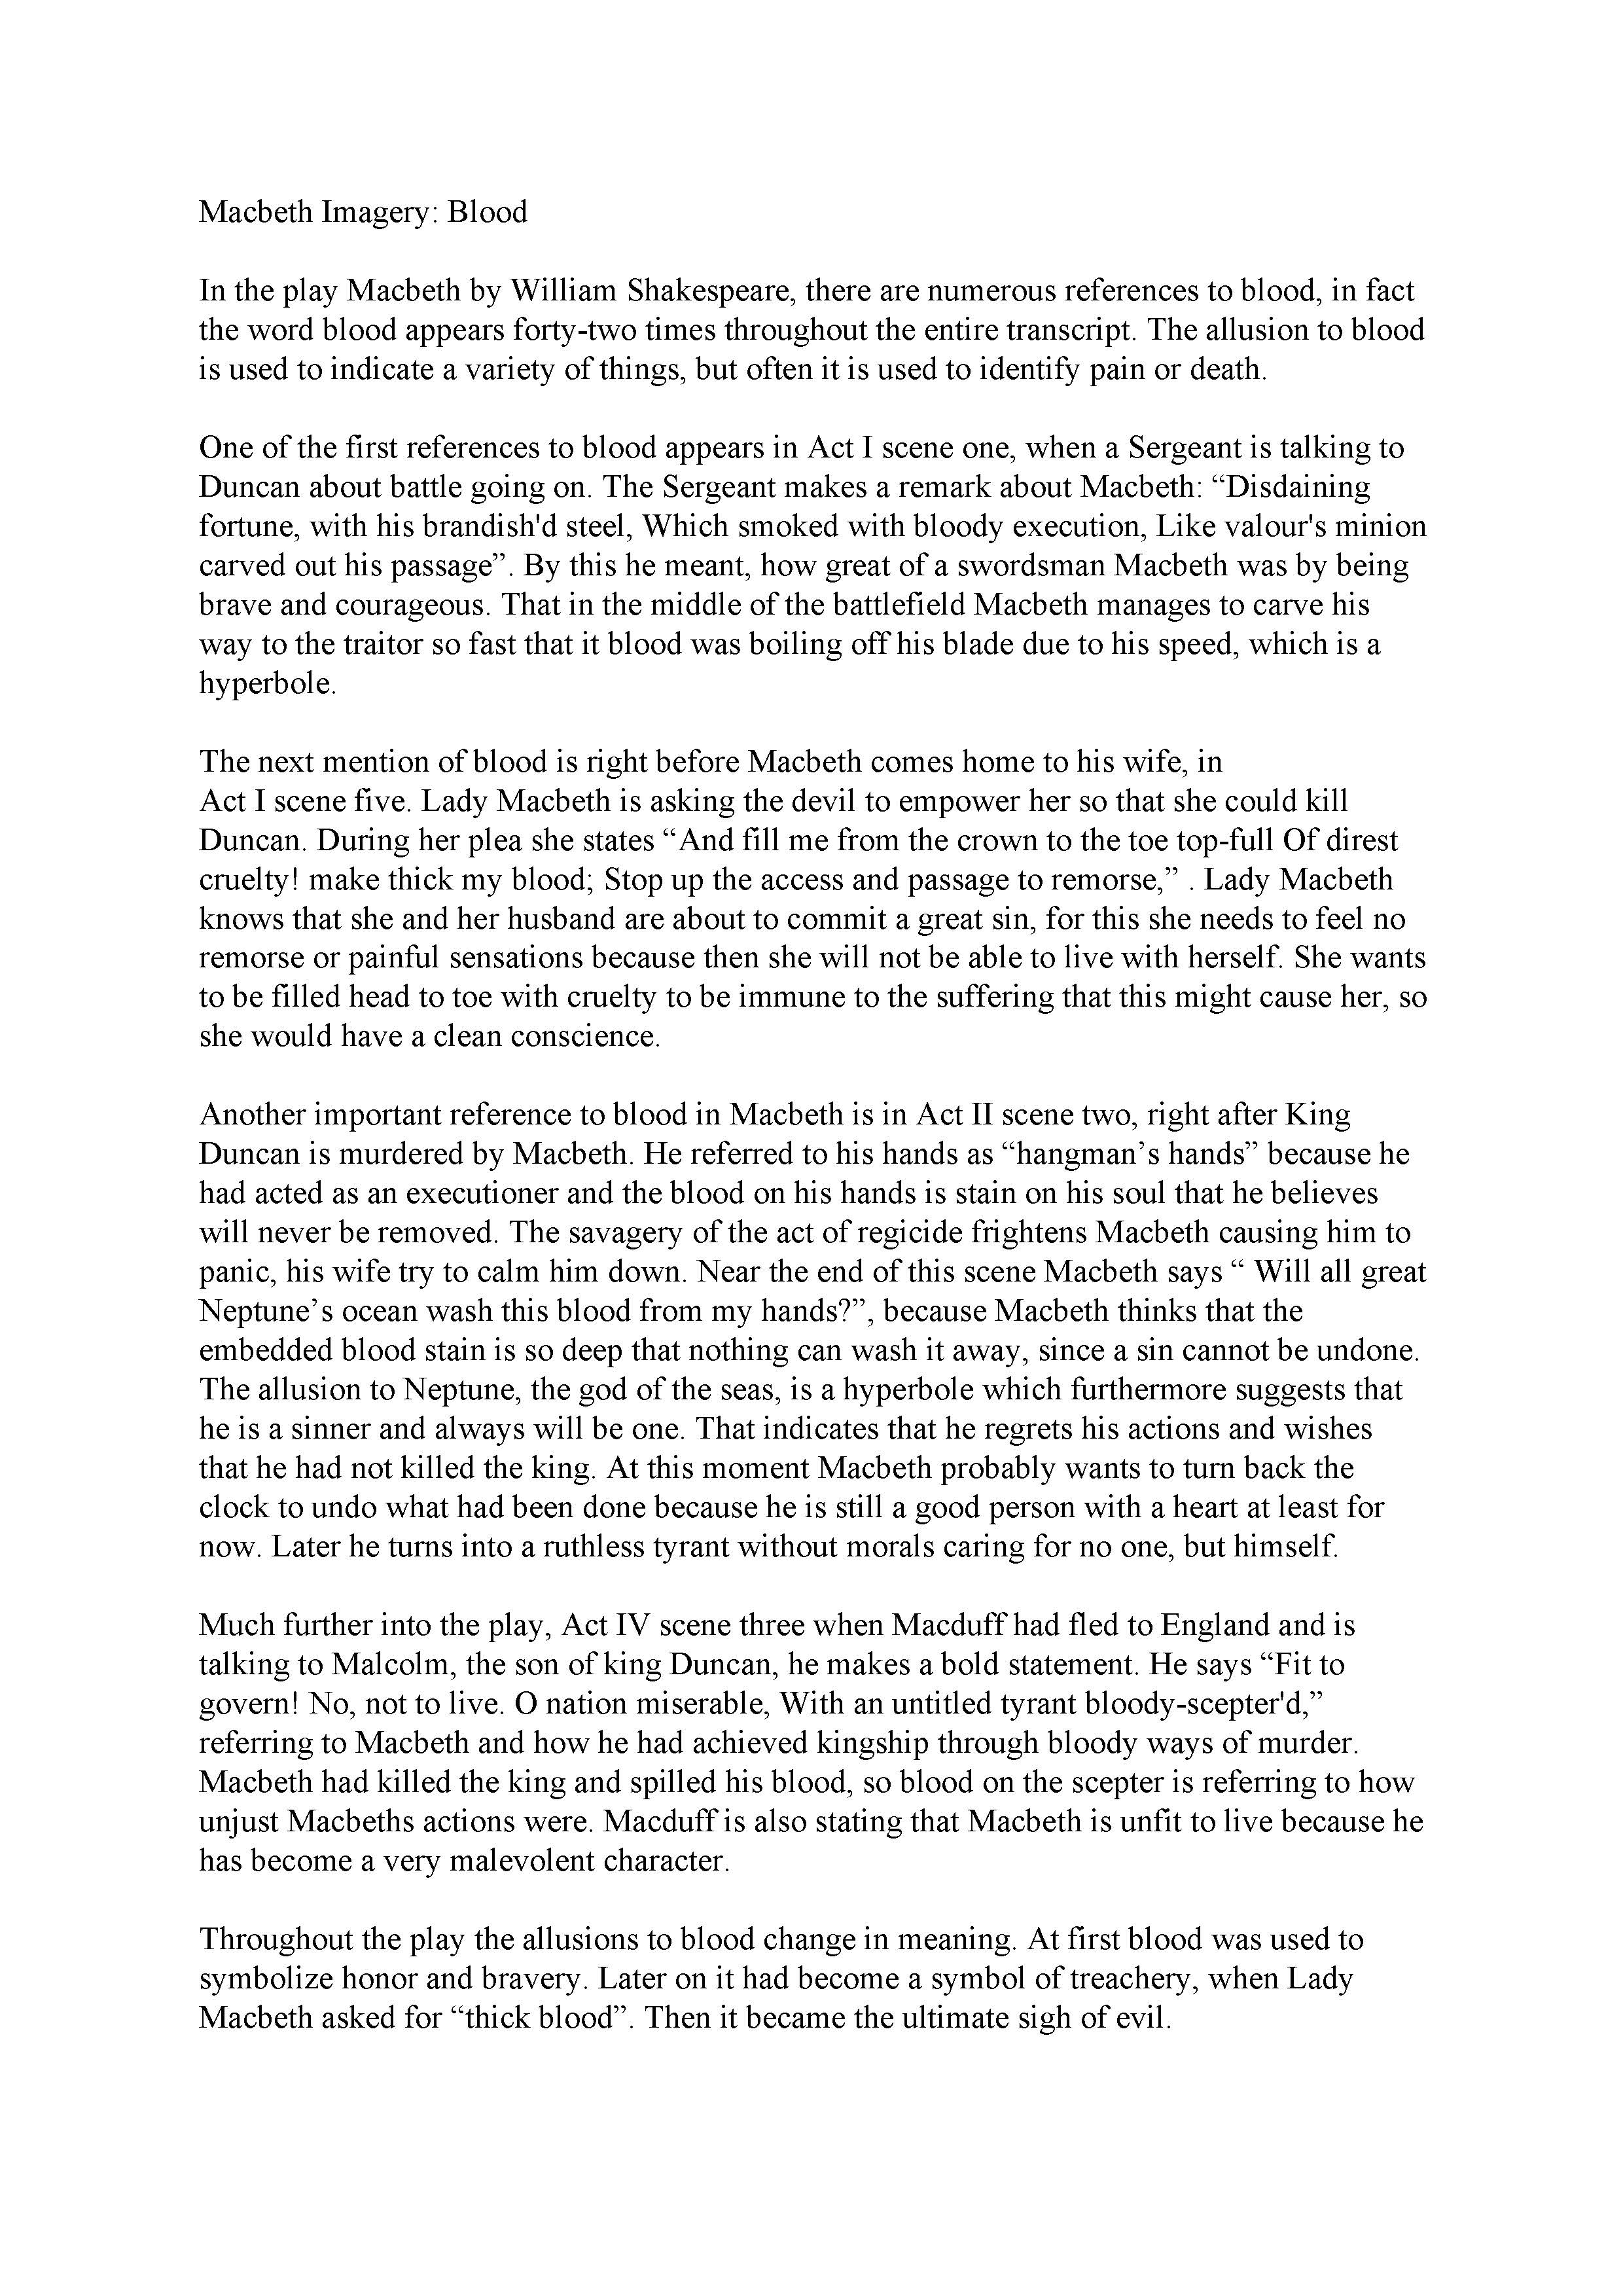 017 Macbeth Essay Sample How To Essays Excellent Write An Expository For 4th Grade Make Longer With Words Start Introduction Full